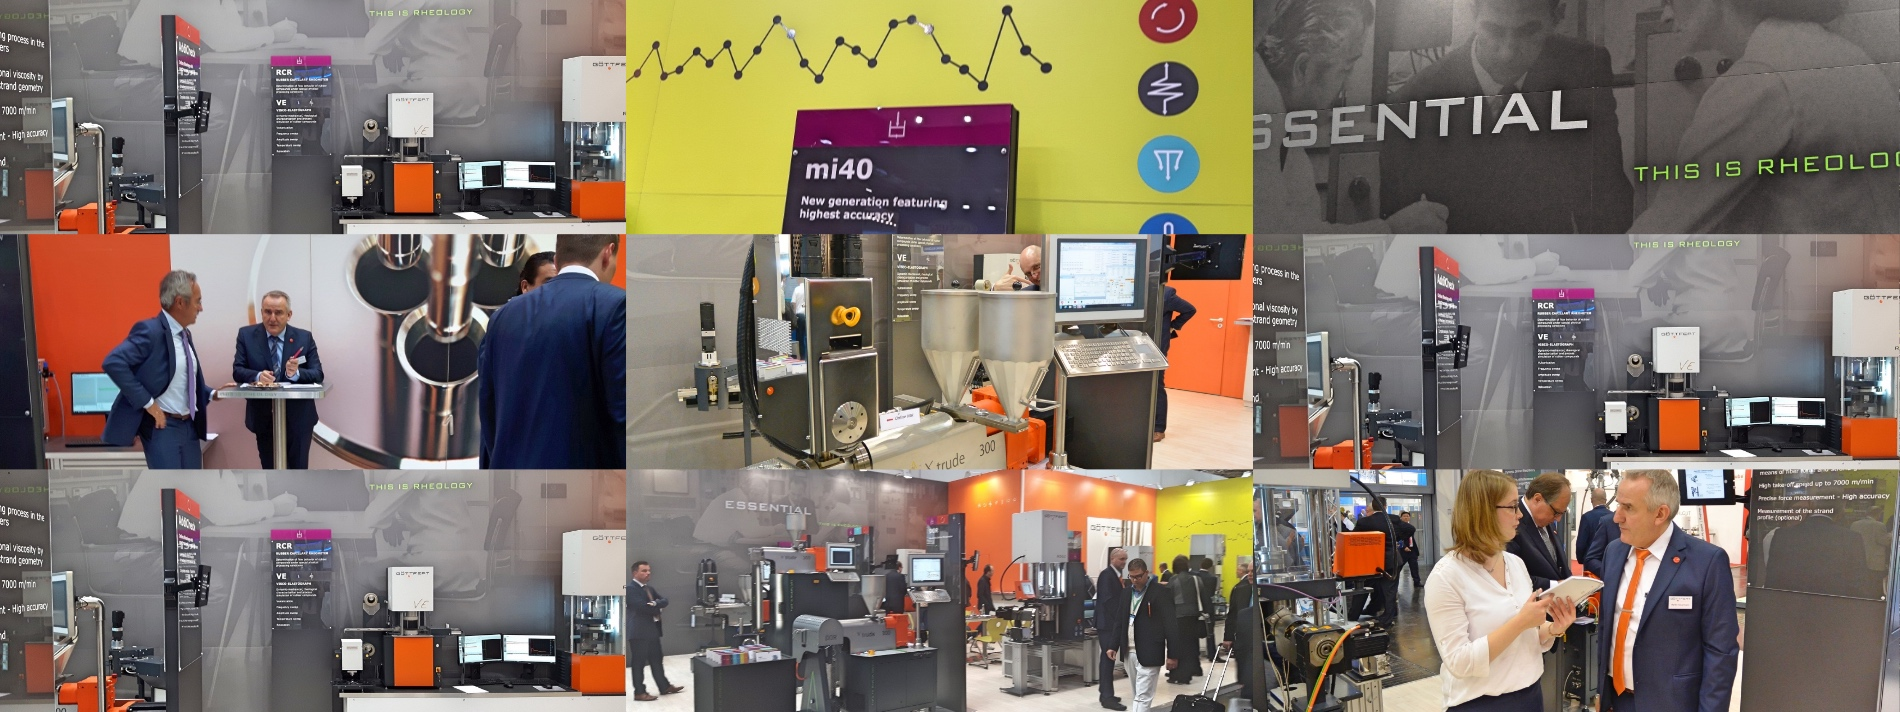 Industrial Design, Messestand und neues Image.